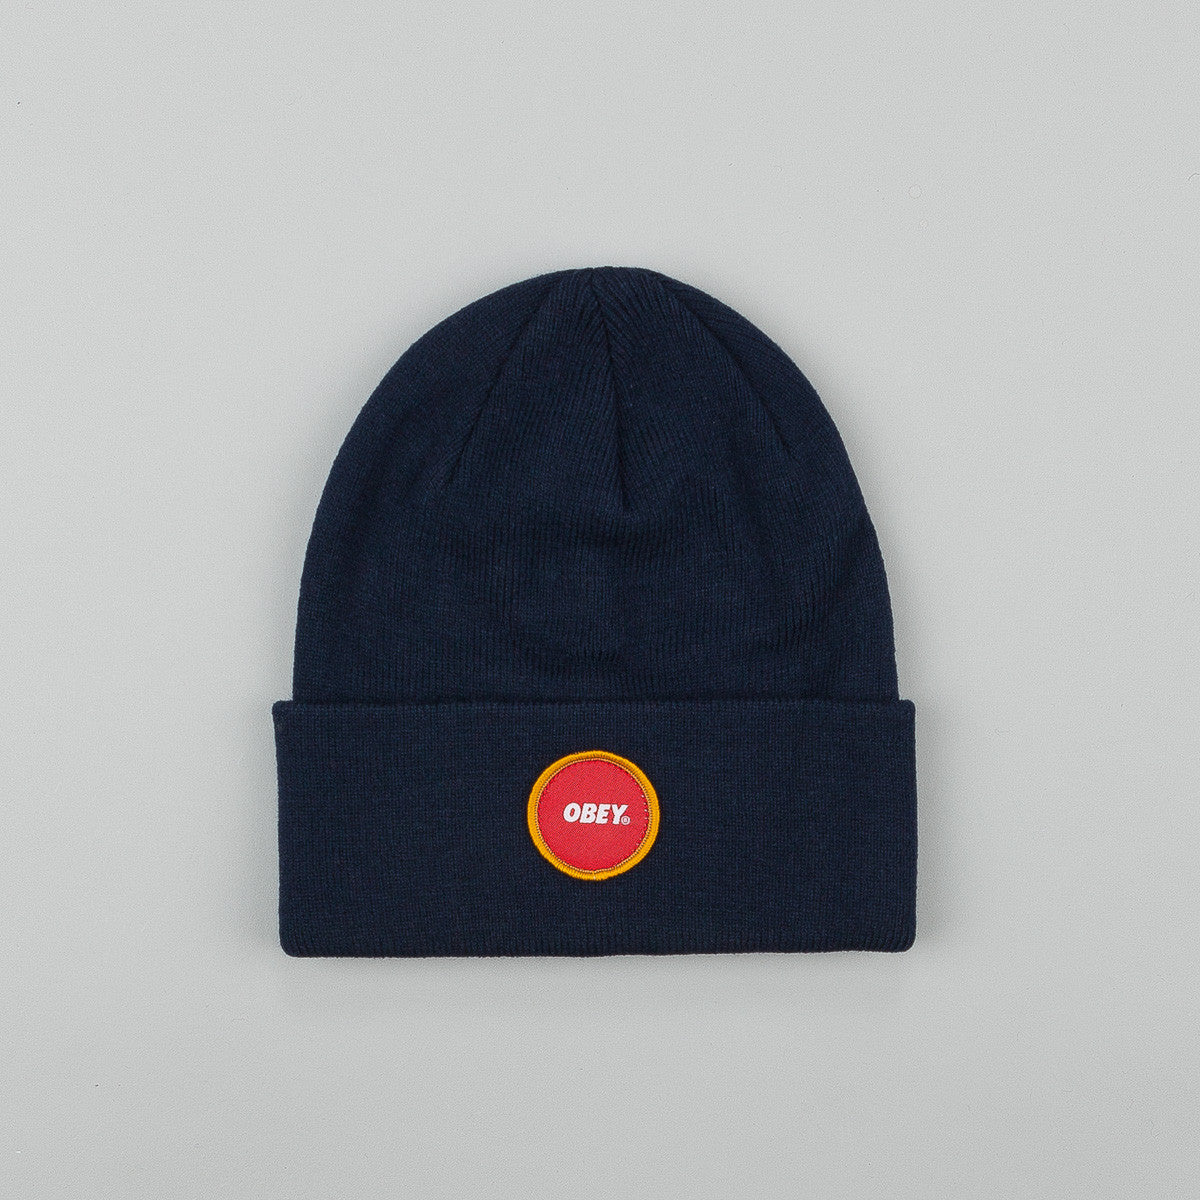 Obey Circle patch Beanie Navy